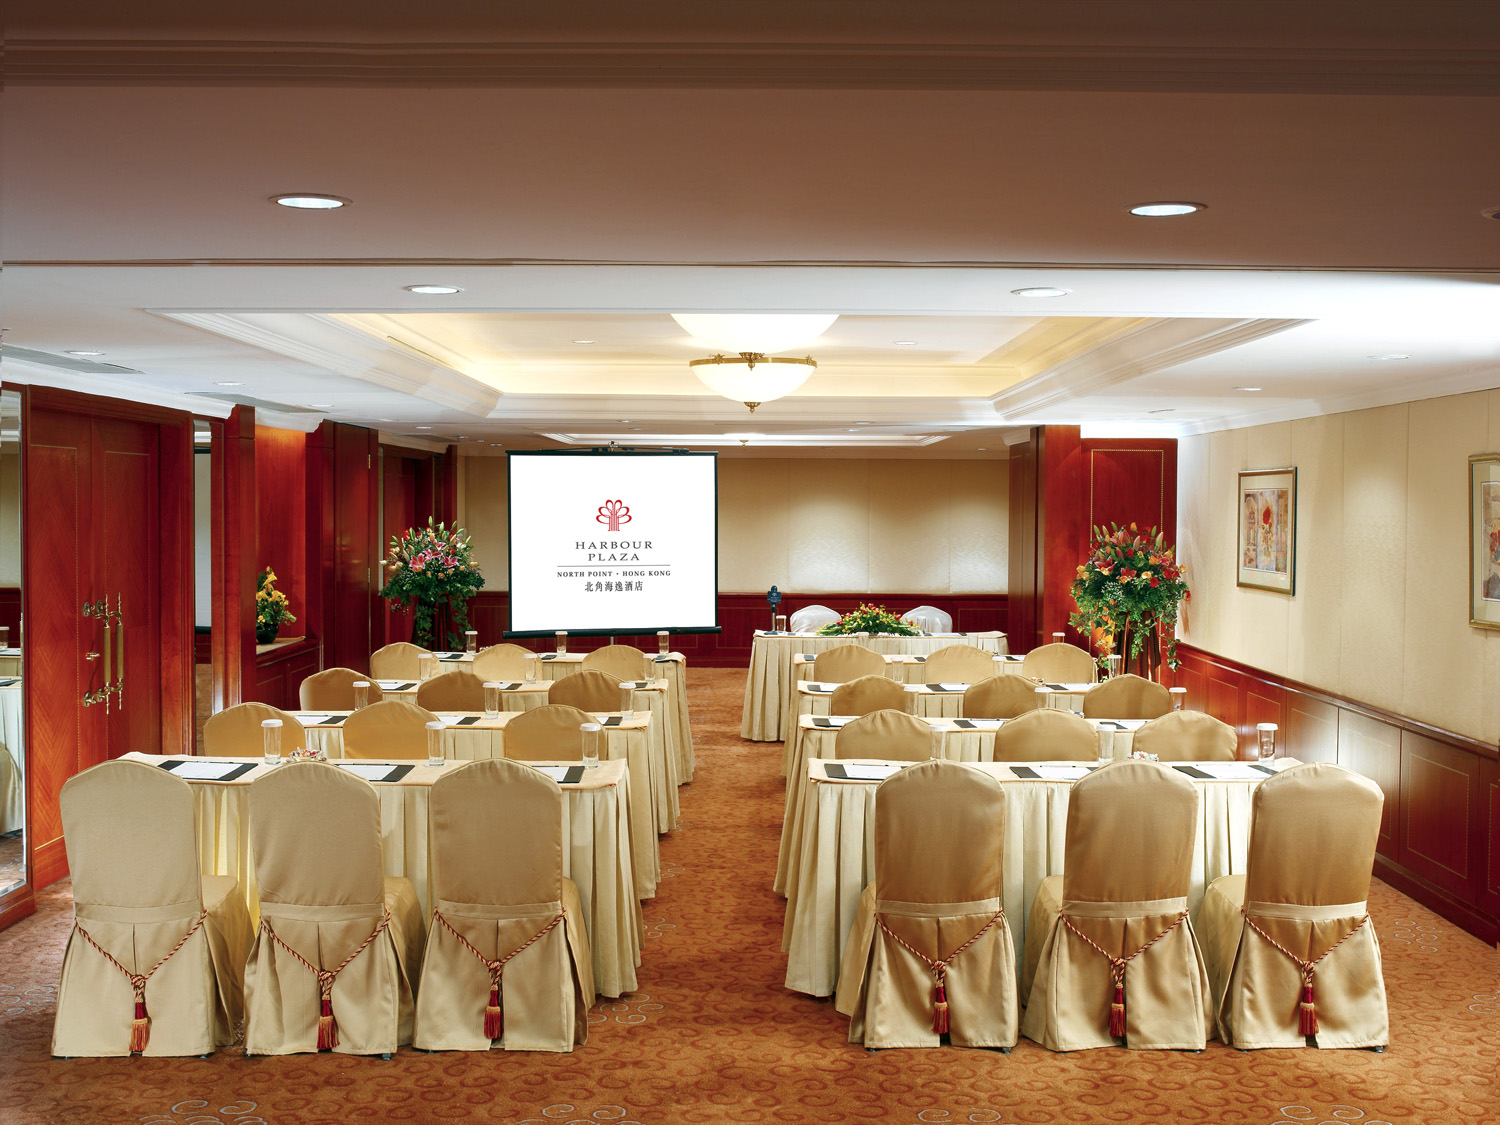 Harbour Plaza Rooms - Classroom Set-up